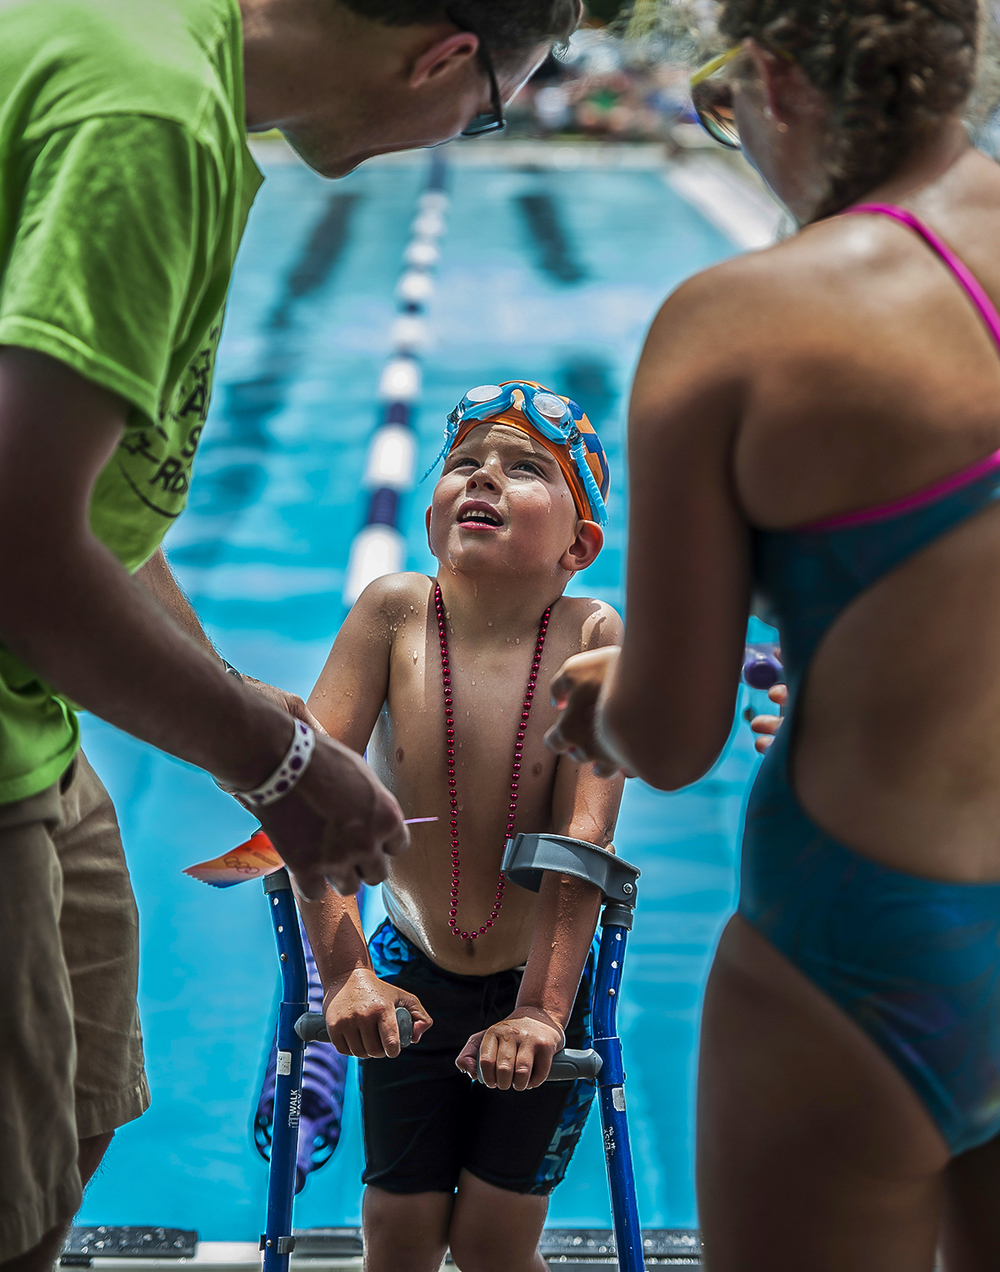 "Thomas Prechtel, 5, receives a participation ribbon after swimming the 25 meter freestyle during the Southern Indiana Swim Association meet at South Harrison State Park in Elizabeth, Ind., on Saturday, July 13, 2013. He is diagnosed with Spina Bifida, which renders him unable to use his legs. This is his first summer swimming and isapart of the Jeffersonville Aquatic swim team. His mother said that ""it makes him feel free when he is floating the water."""